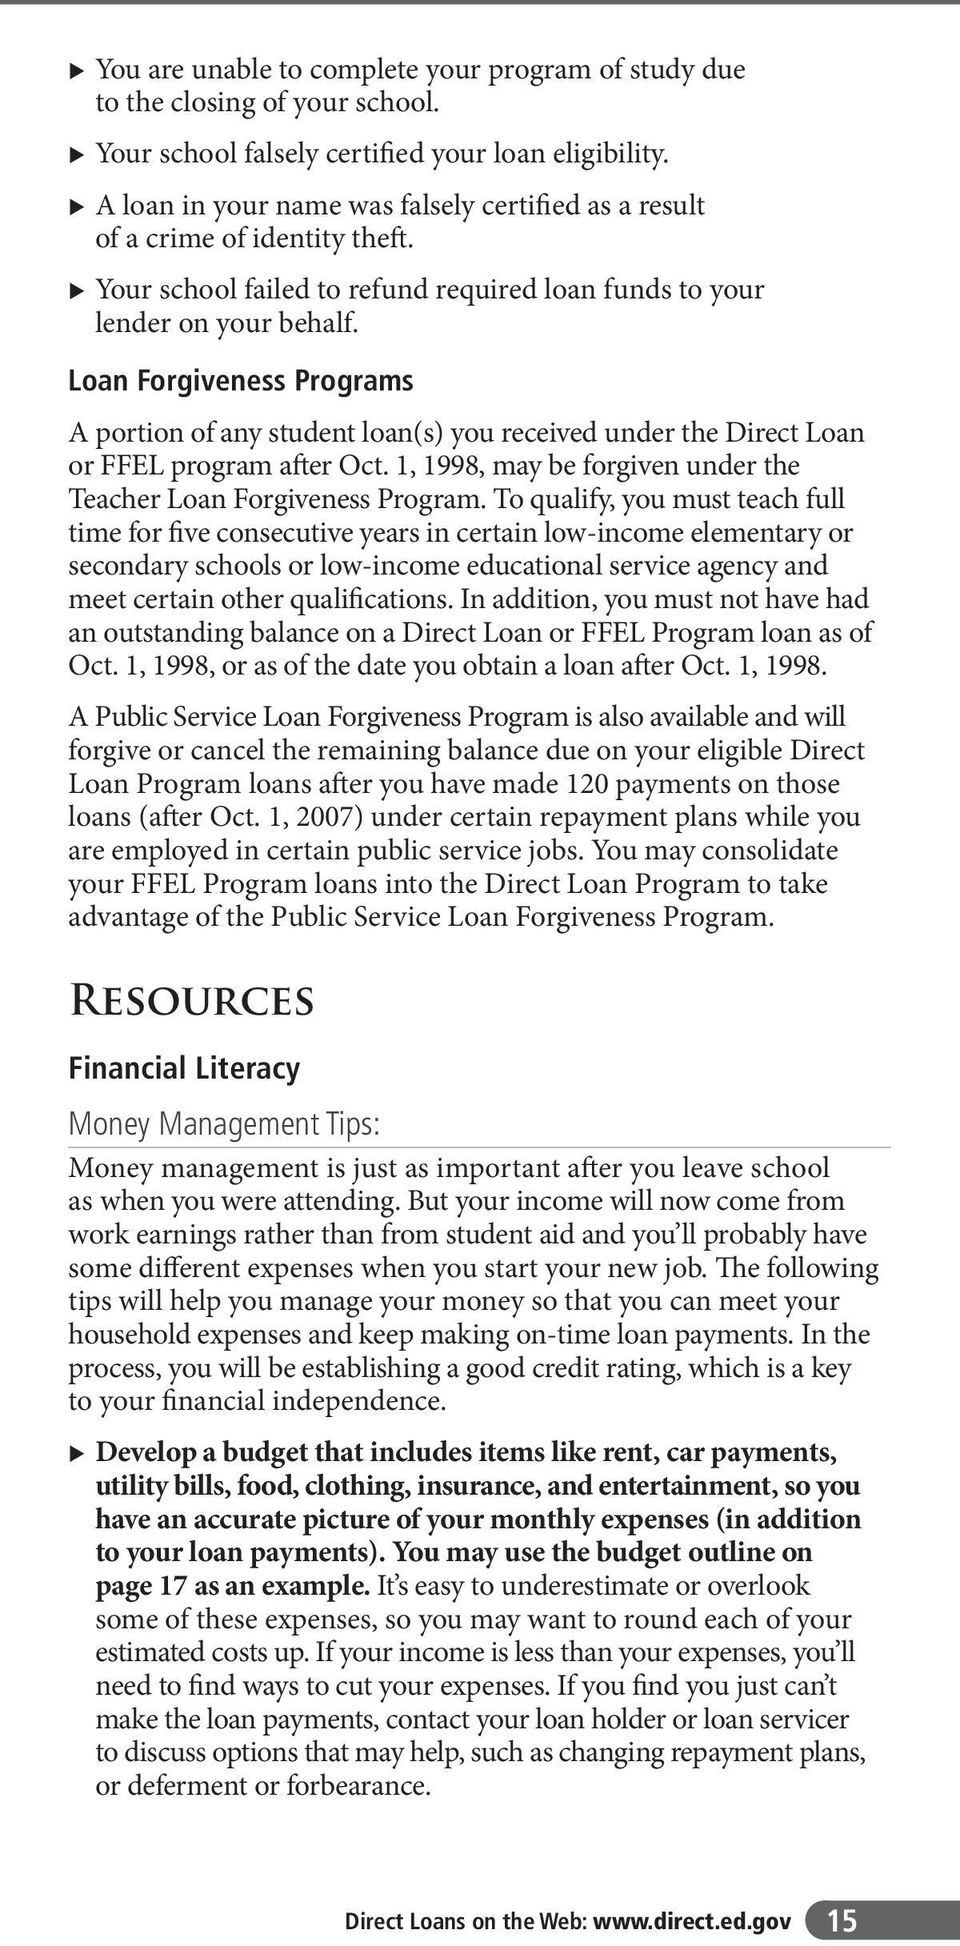 Loan Forgiveness Programs A portion of any student loan(s) you received under the Direct Loan or FFEL program after Oct. 1, 1998, may be forgiven under the Teacher Loan Forgiveness Program.